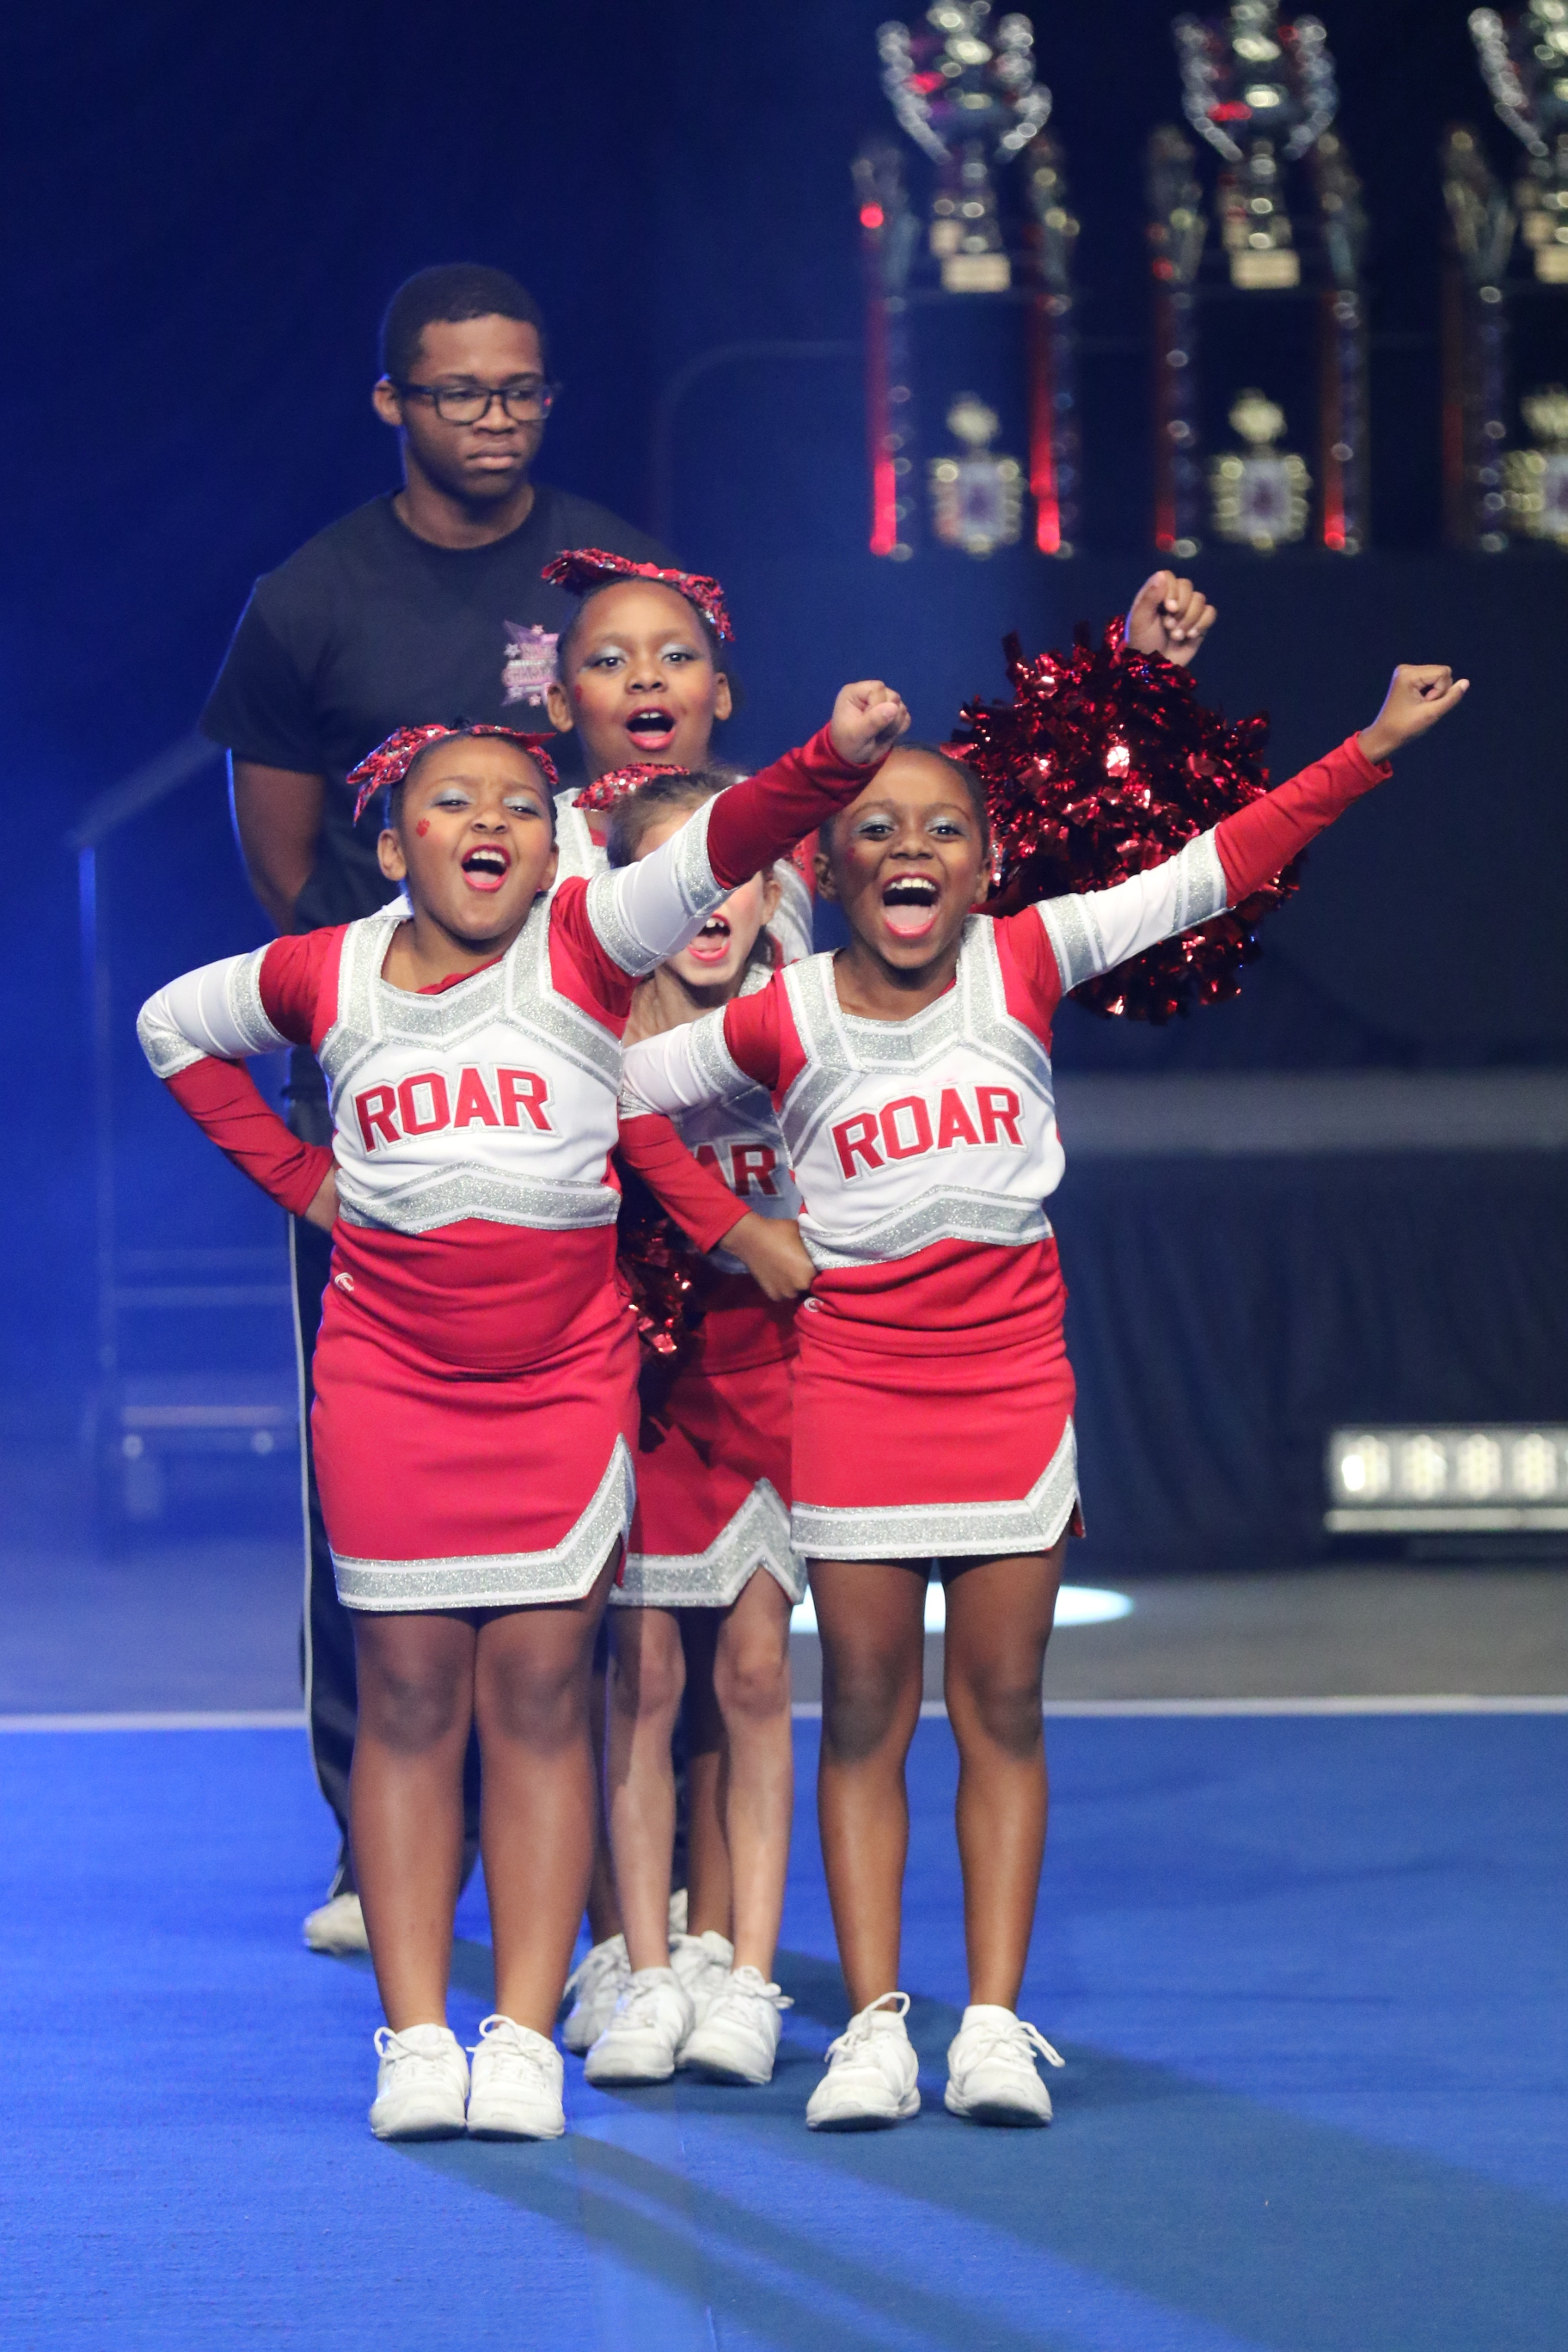 Our Mission - To empower the next generation of female leaders by using the platform of competitive cheer to enhance the lives of girls and young women in the communities of Harlem and the Bronx.Learn More